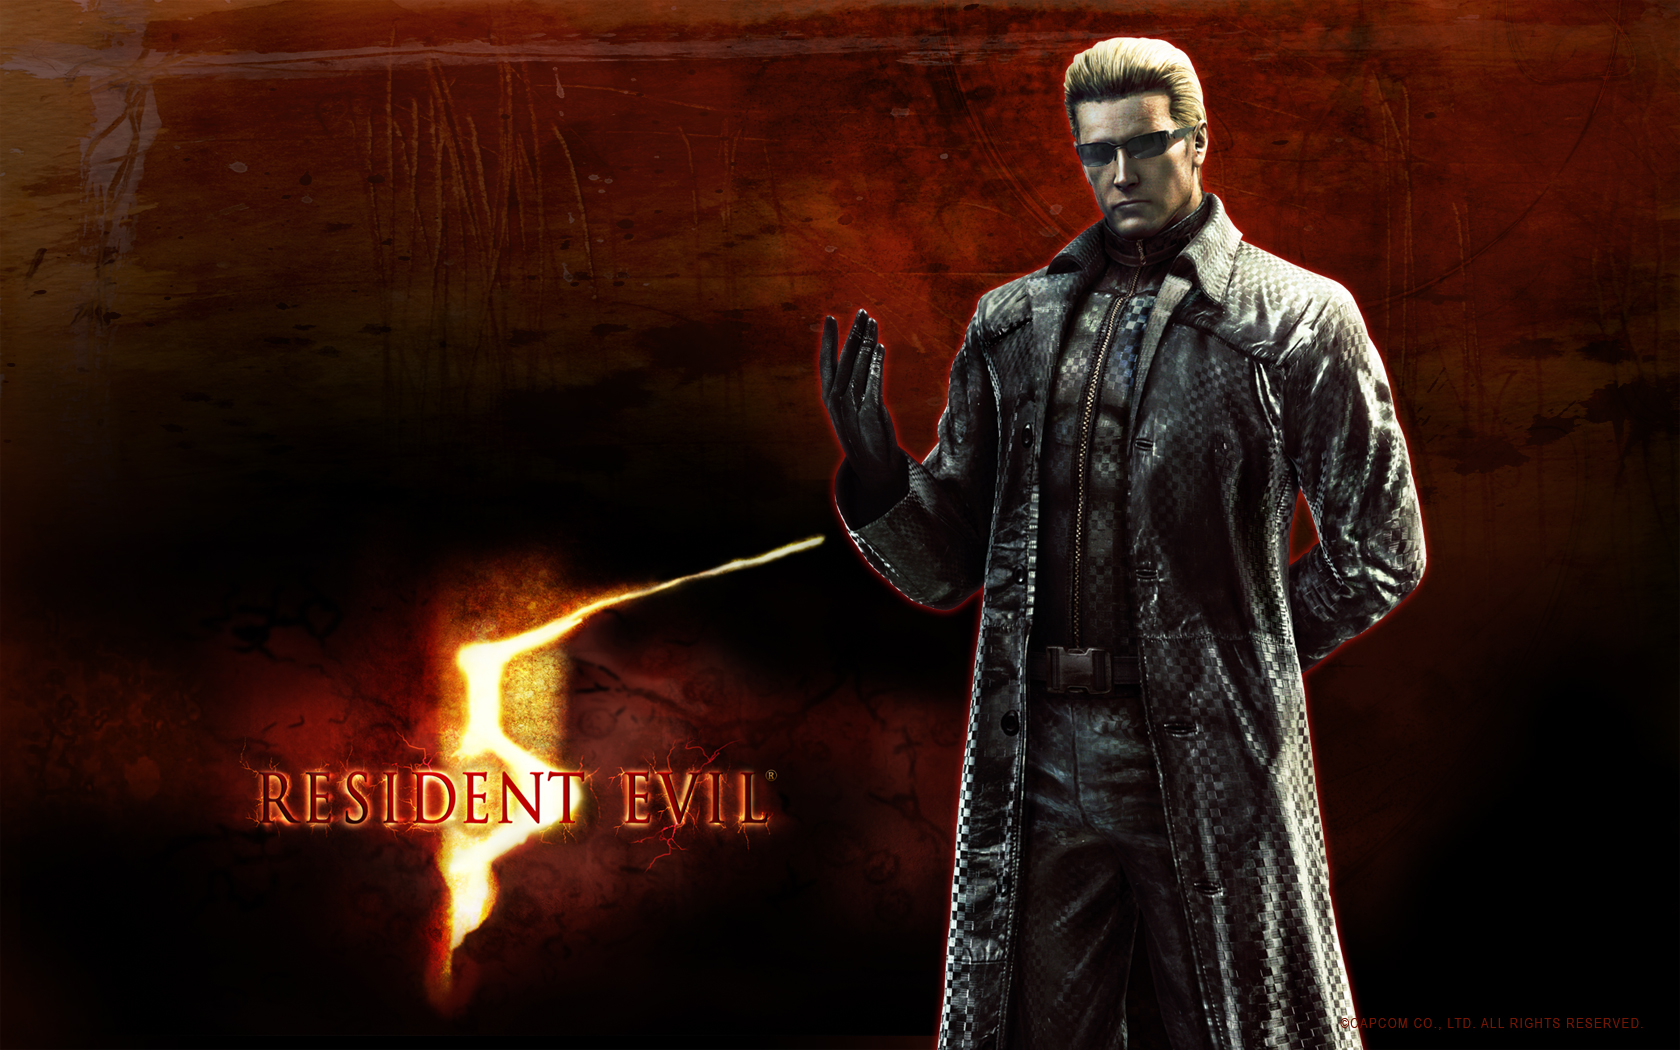 Resident evil wallpaper and background image 1680x1050 - Wallpaper resident evil 5 ...